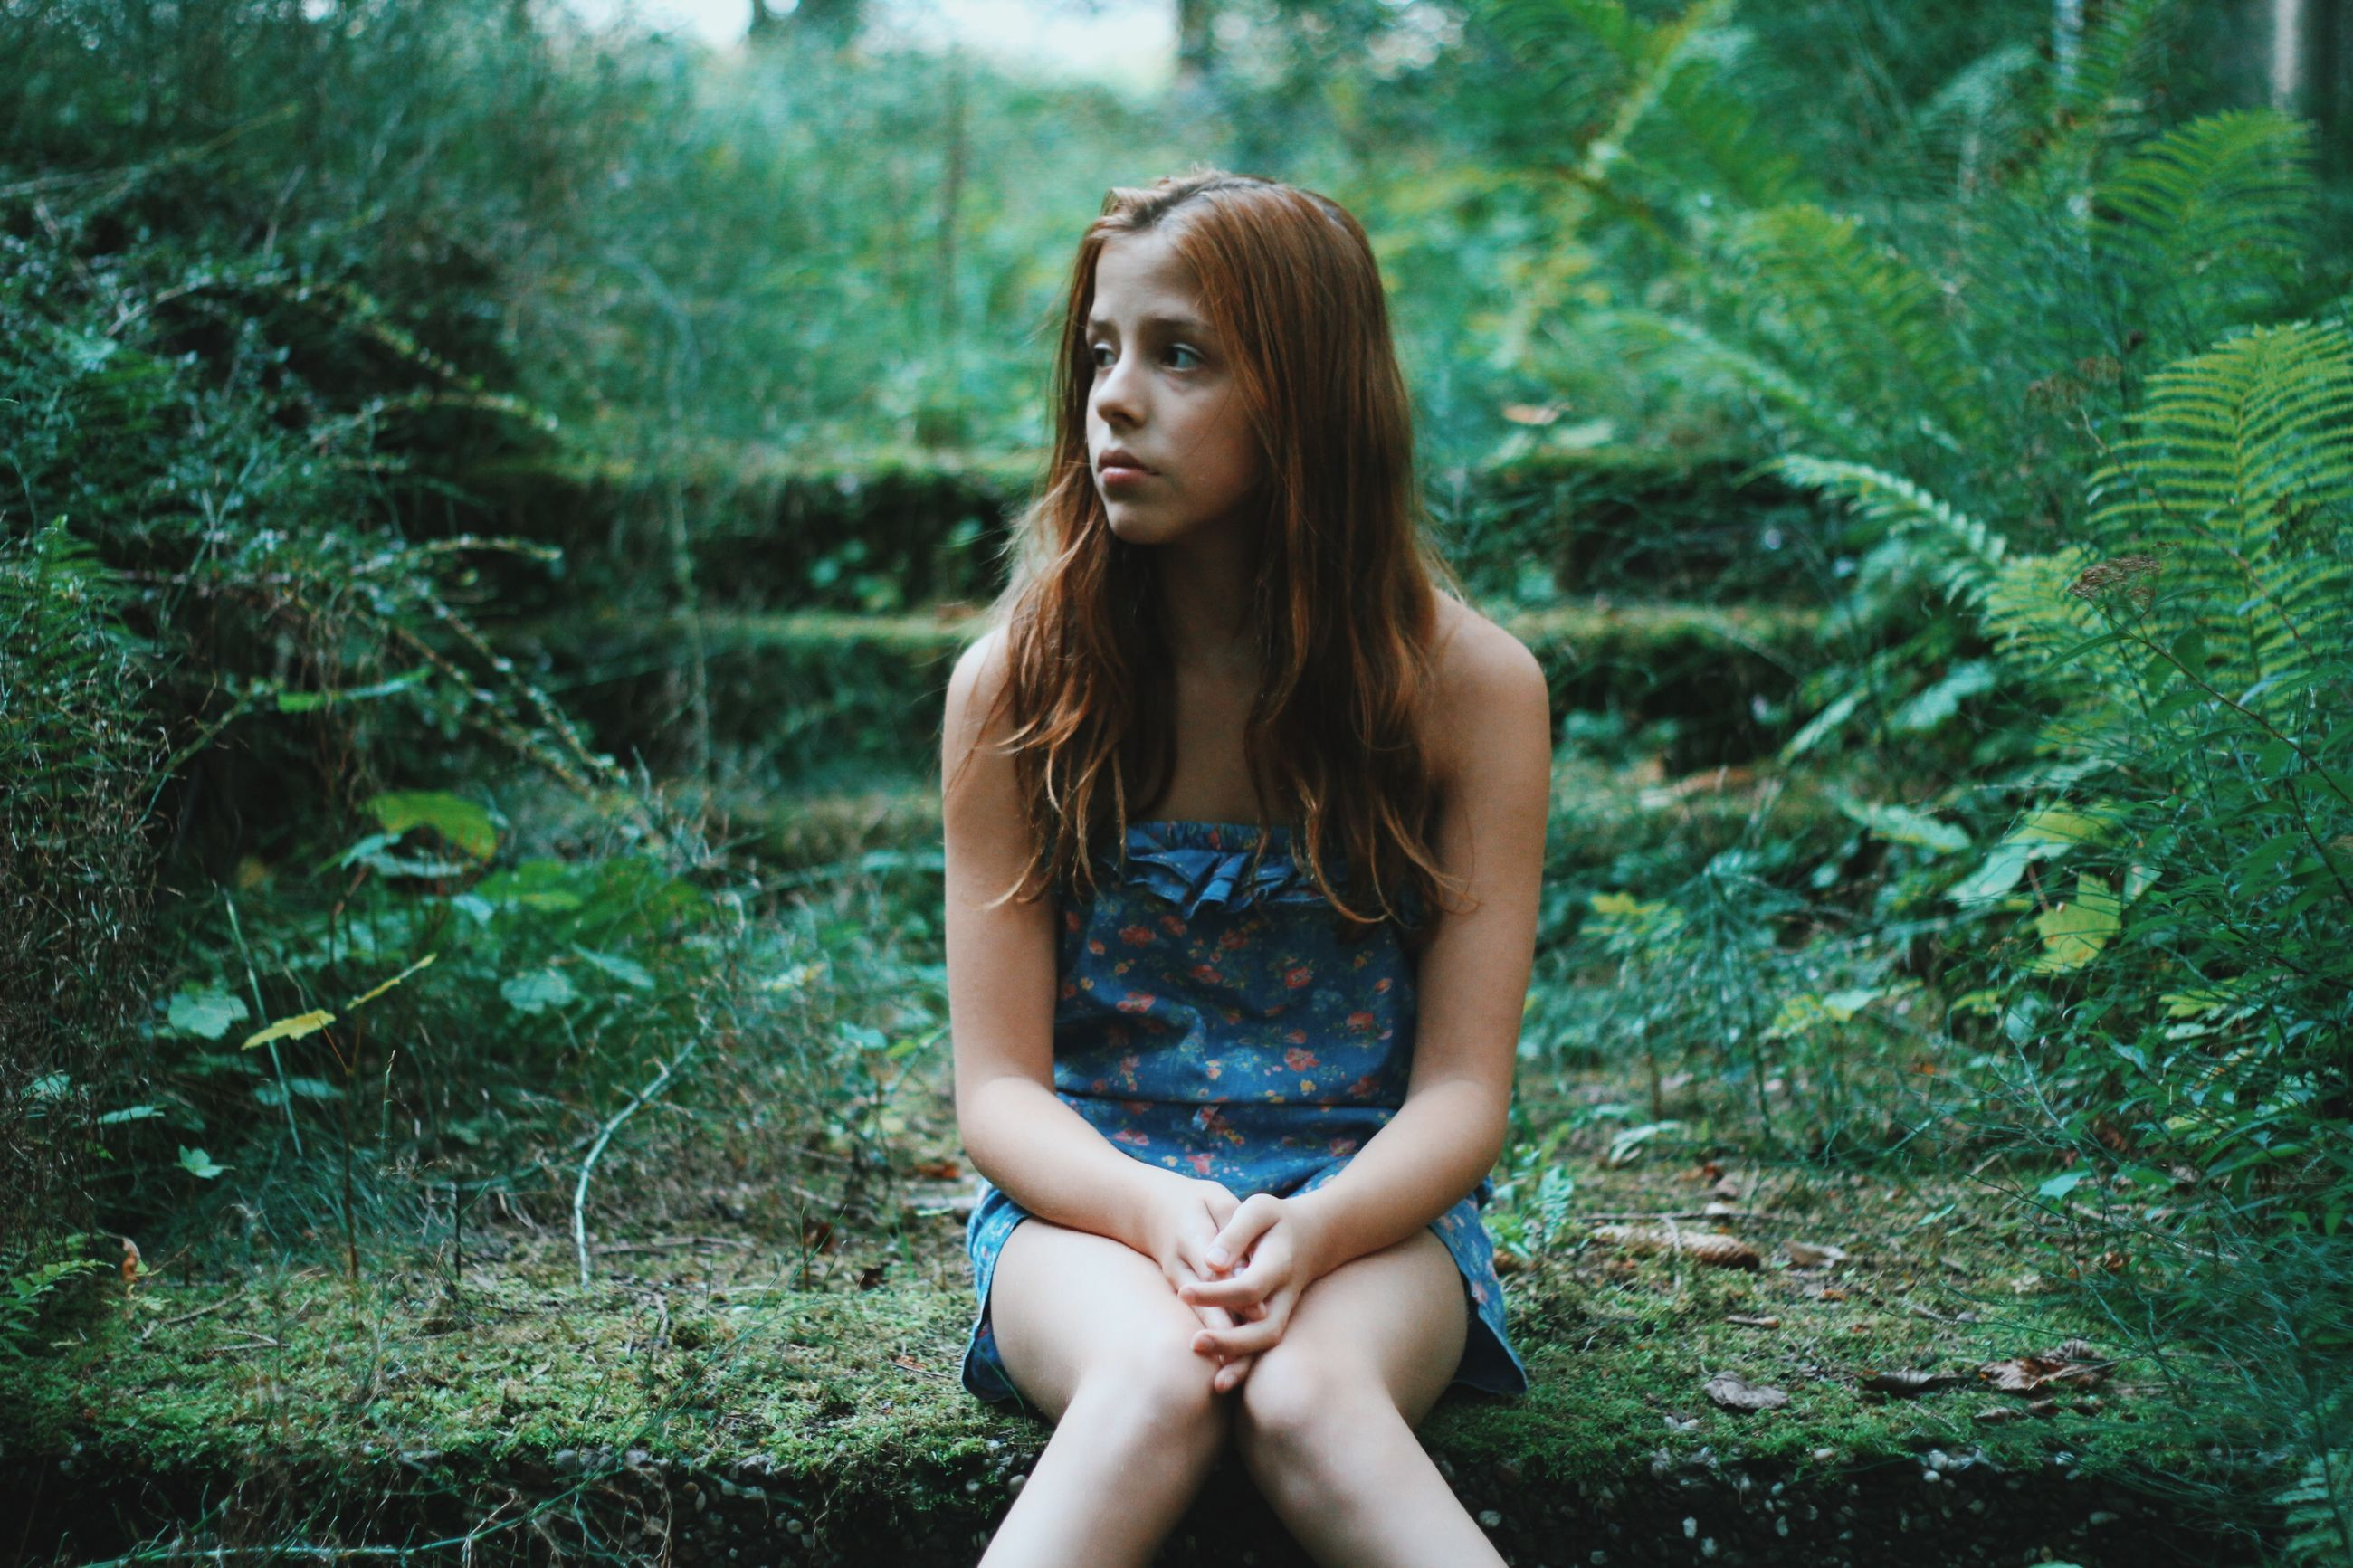 young adult, young women, person, portrait, long hair, lifestyles, looking at camera, leisure activity, tree, three quarter length, standing, front view, beauty, focus on foreground, casual clothing, forest